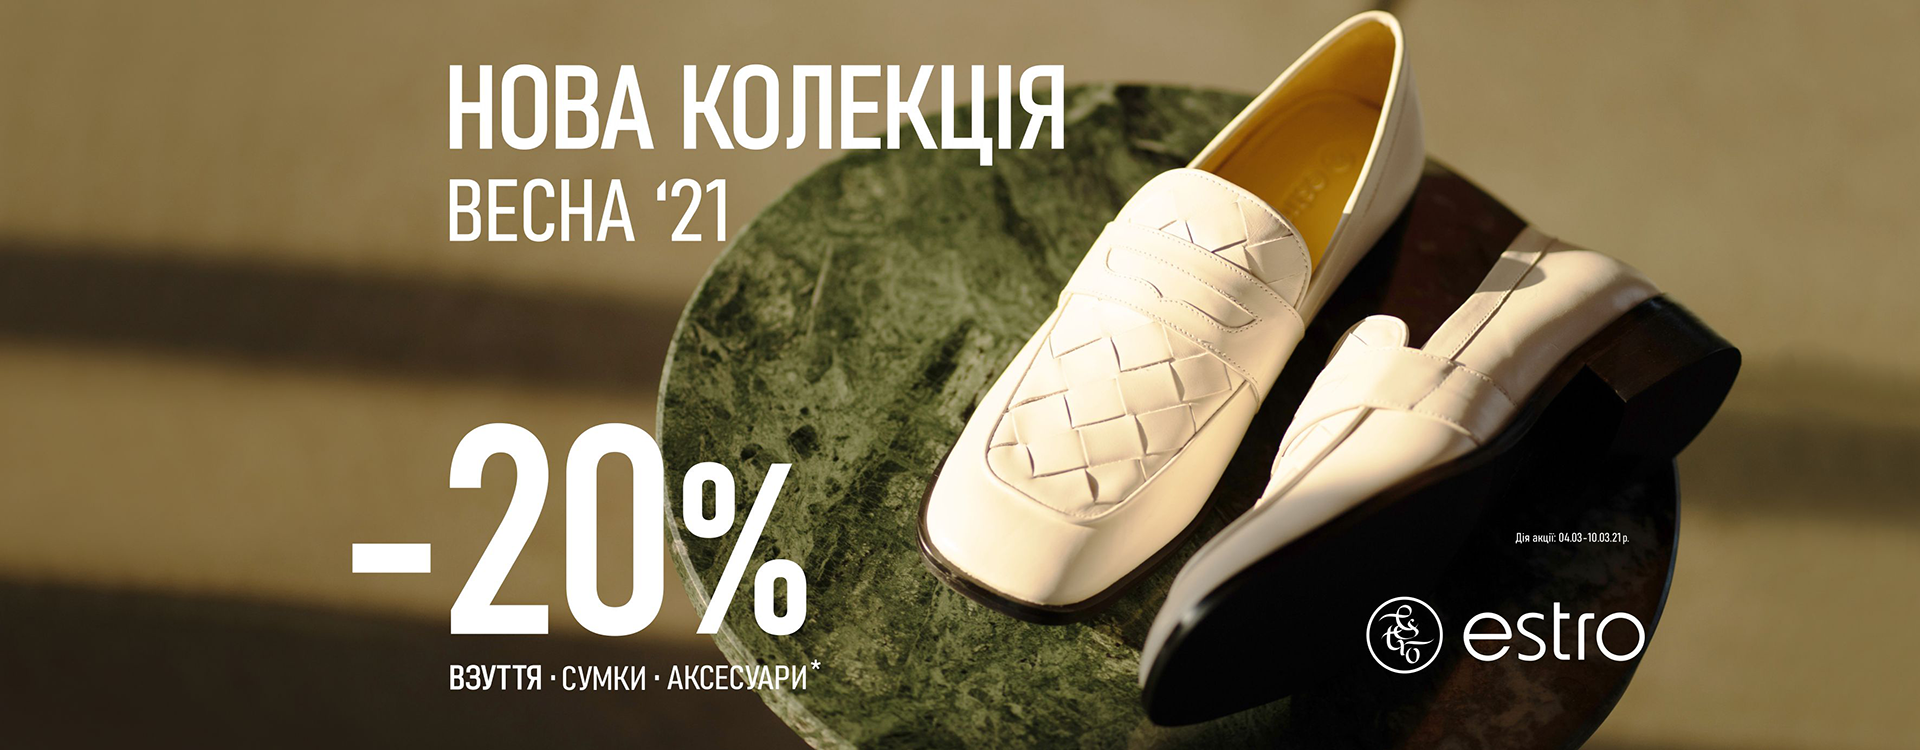 Estro gives 20% for 